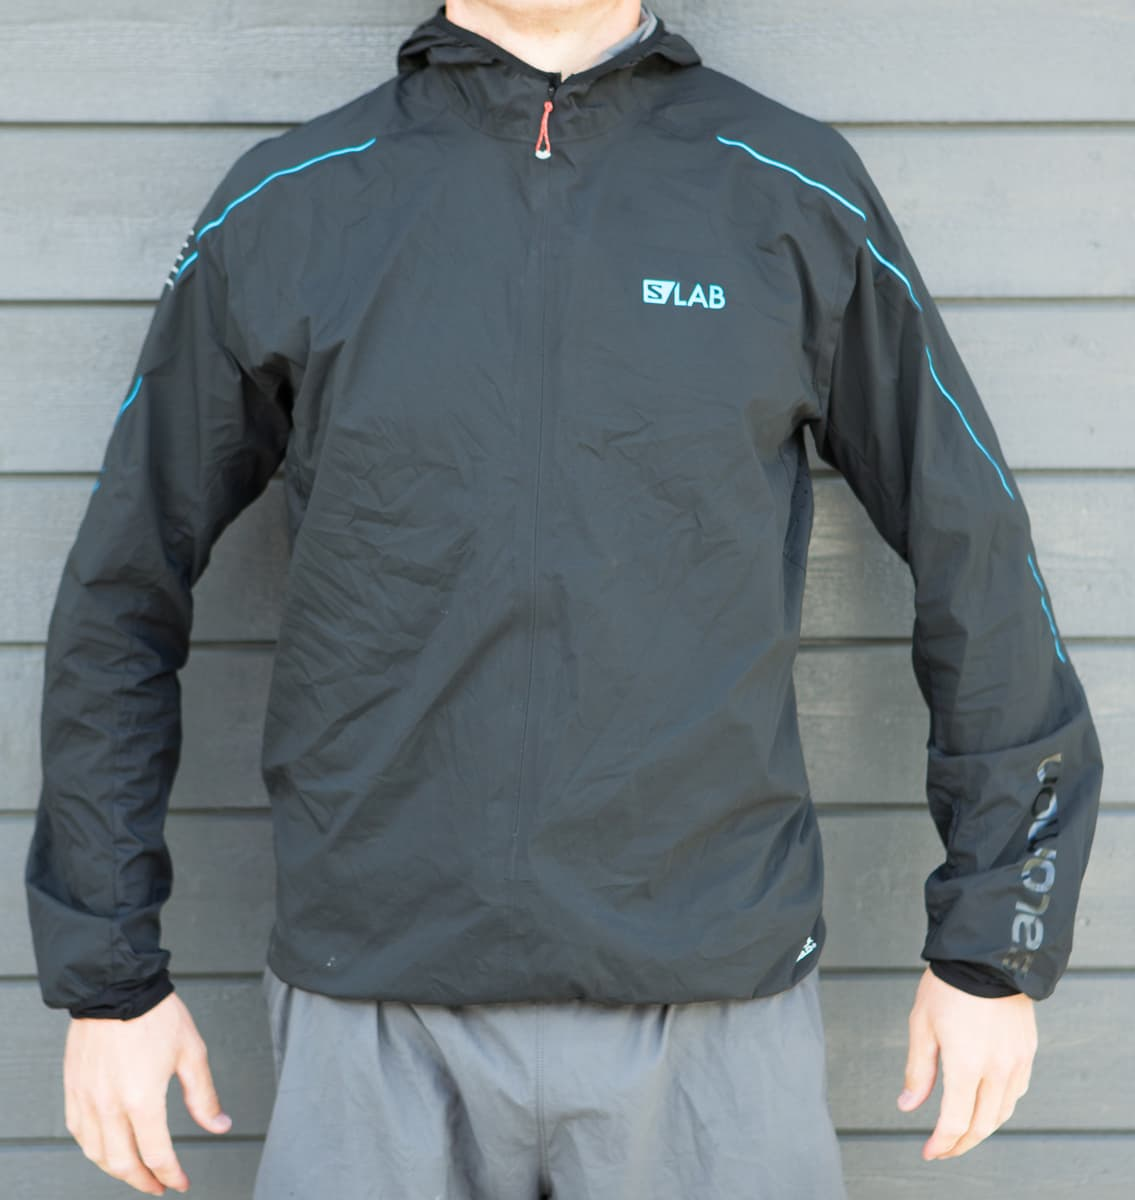 d13ba475 https://image-cdn.utemagasinet.no/var/friflyt/storage/images/utemagasinet.no/test-av/salomon-s-lab-hybrid- jacket/5480824-2-nor-NO/Salomon-S-Lab-Hybrid- ...